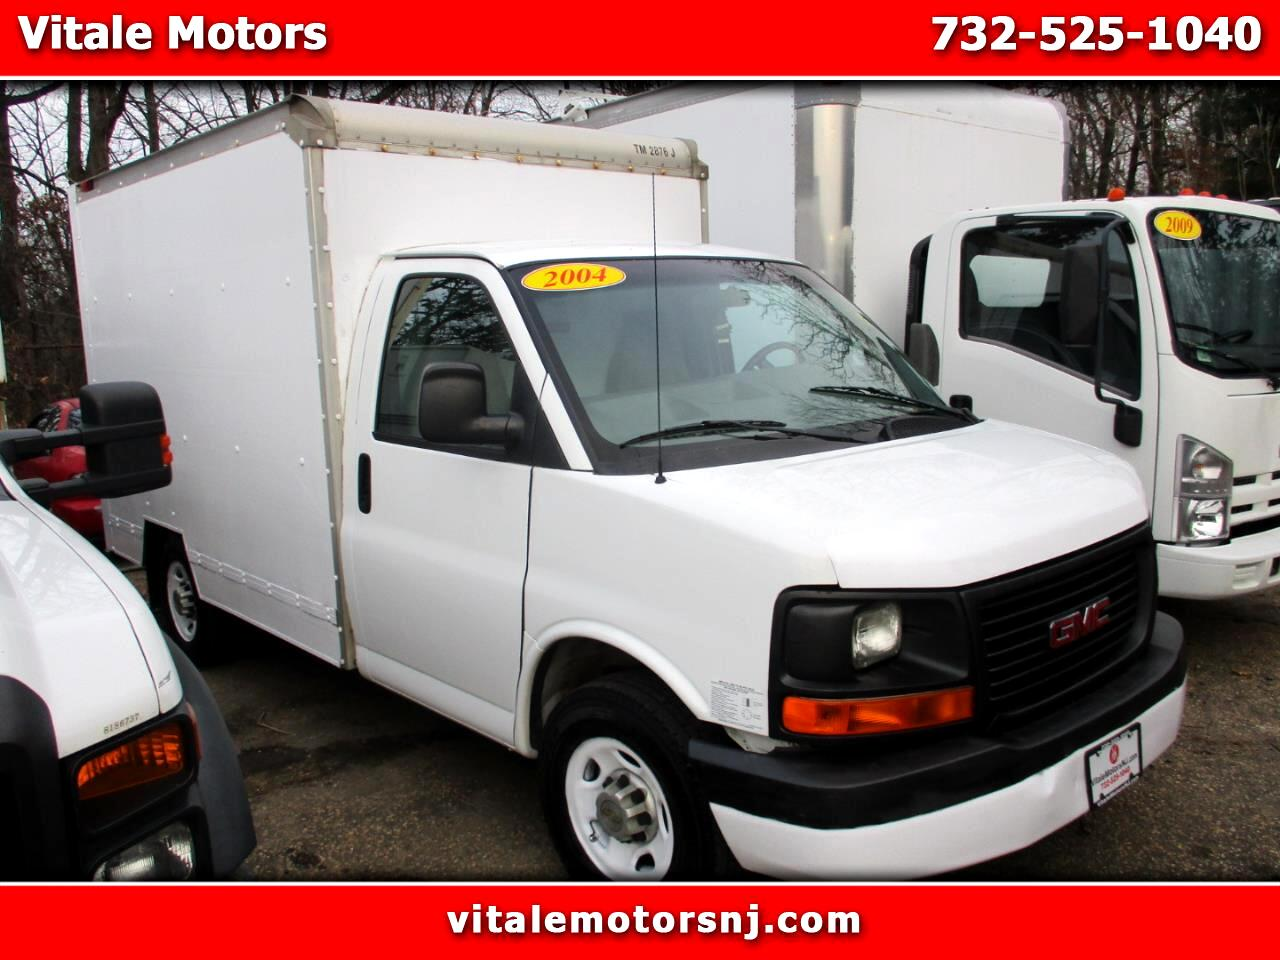 2004 GMC Savana 3500 CUBE VAN 10 FOOT